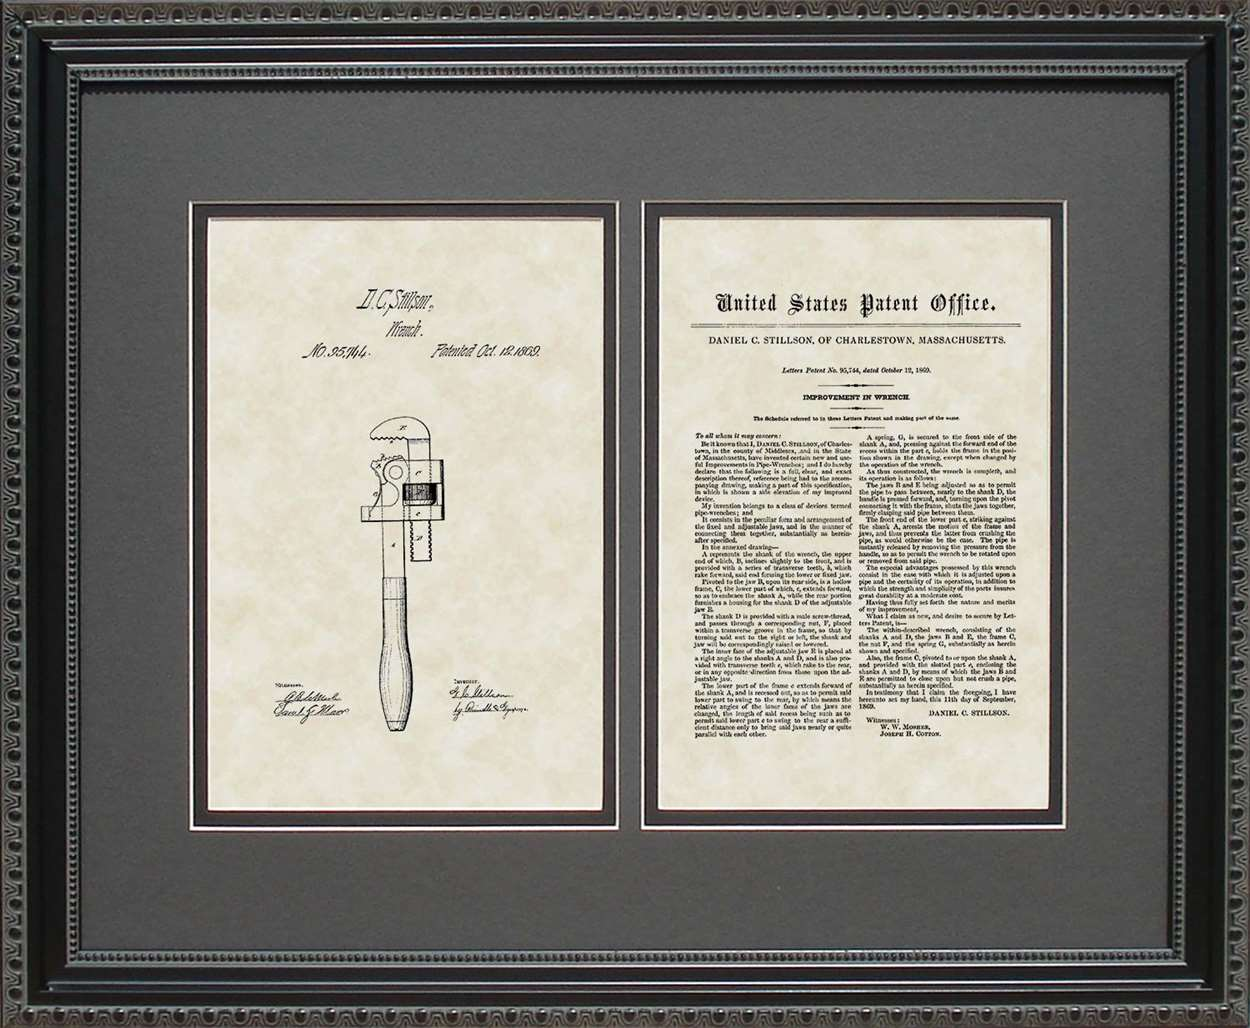 Pipe Wrench Patent, Art & Copy, Stillson, 1869, 16x20